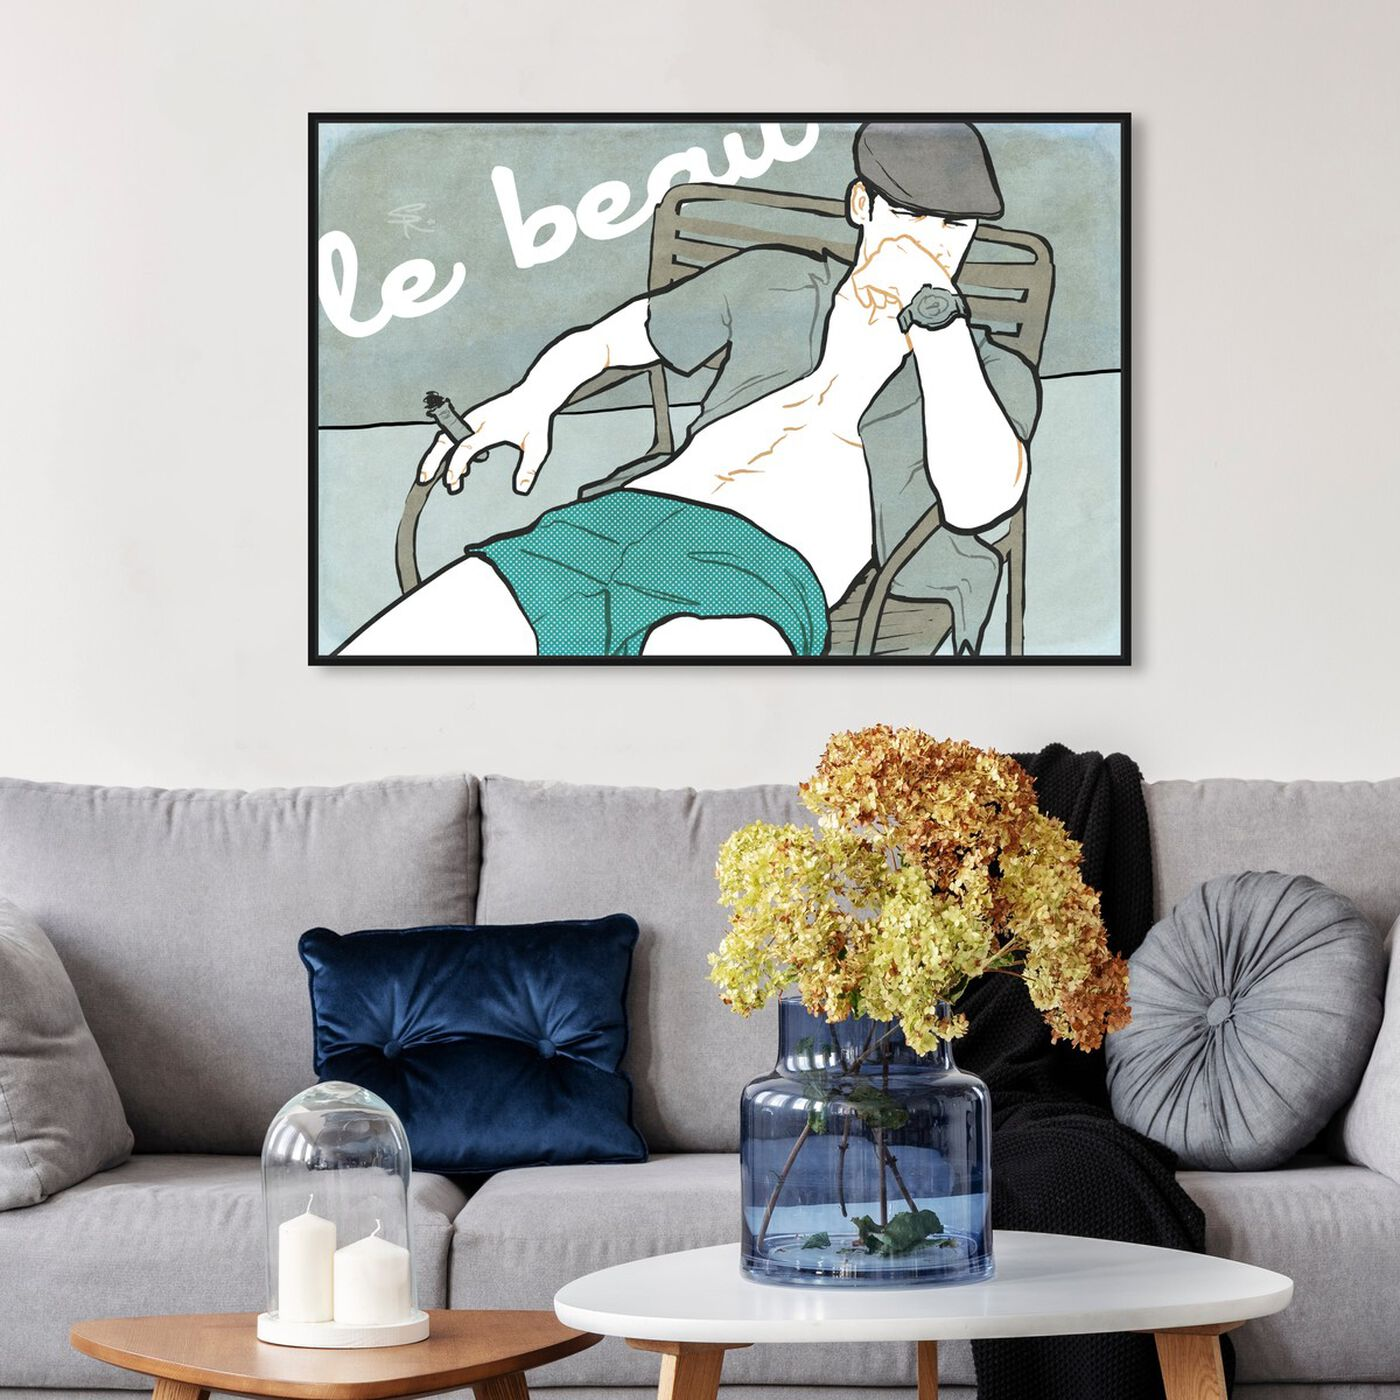 Hanging view of Le Beau featuring fashion and glam and fashion art.